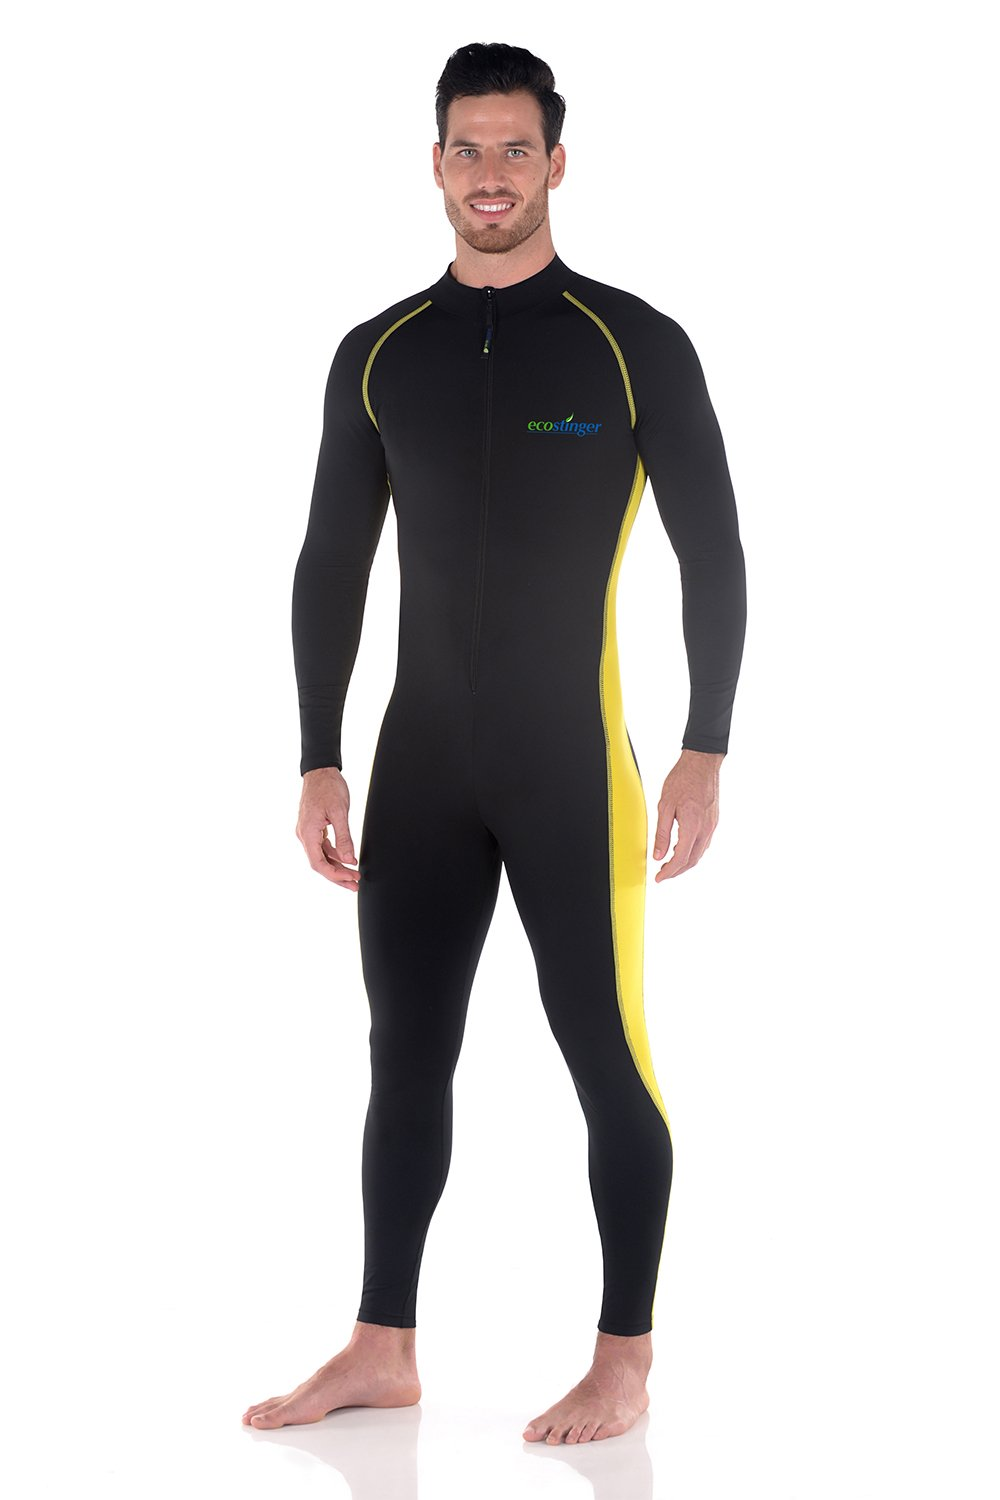 Men Full Body Swimsuit Sun Guard Stinger Suit Dive Skin UPF50+ Black Yellow (M) by EcoStinger